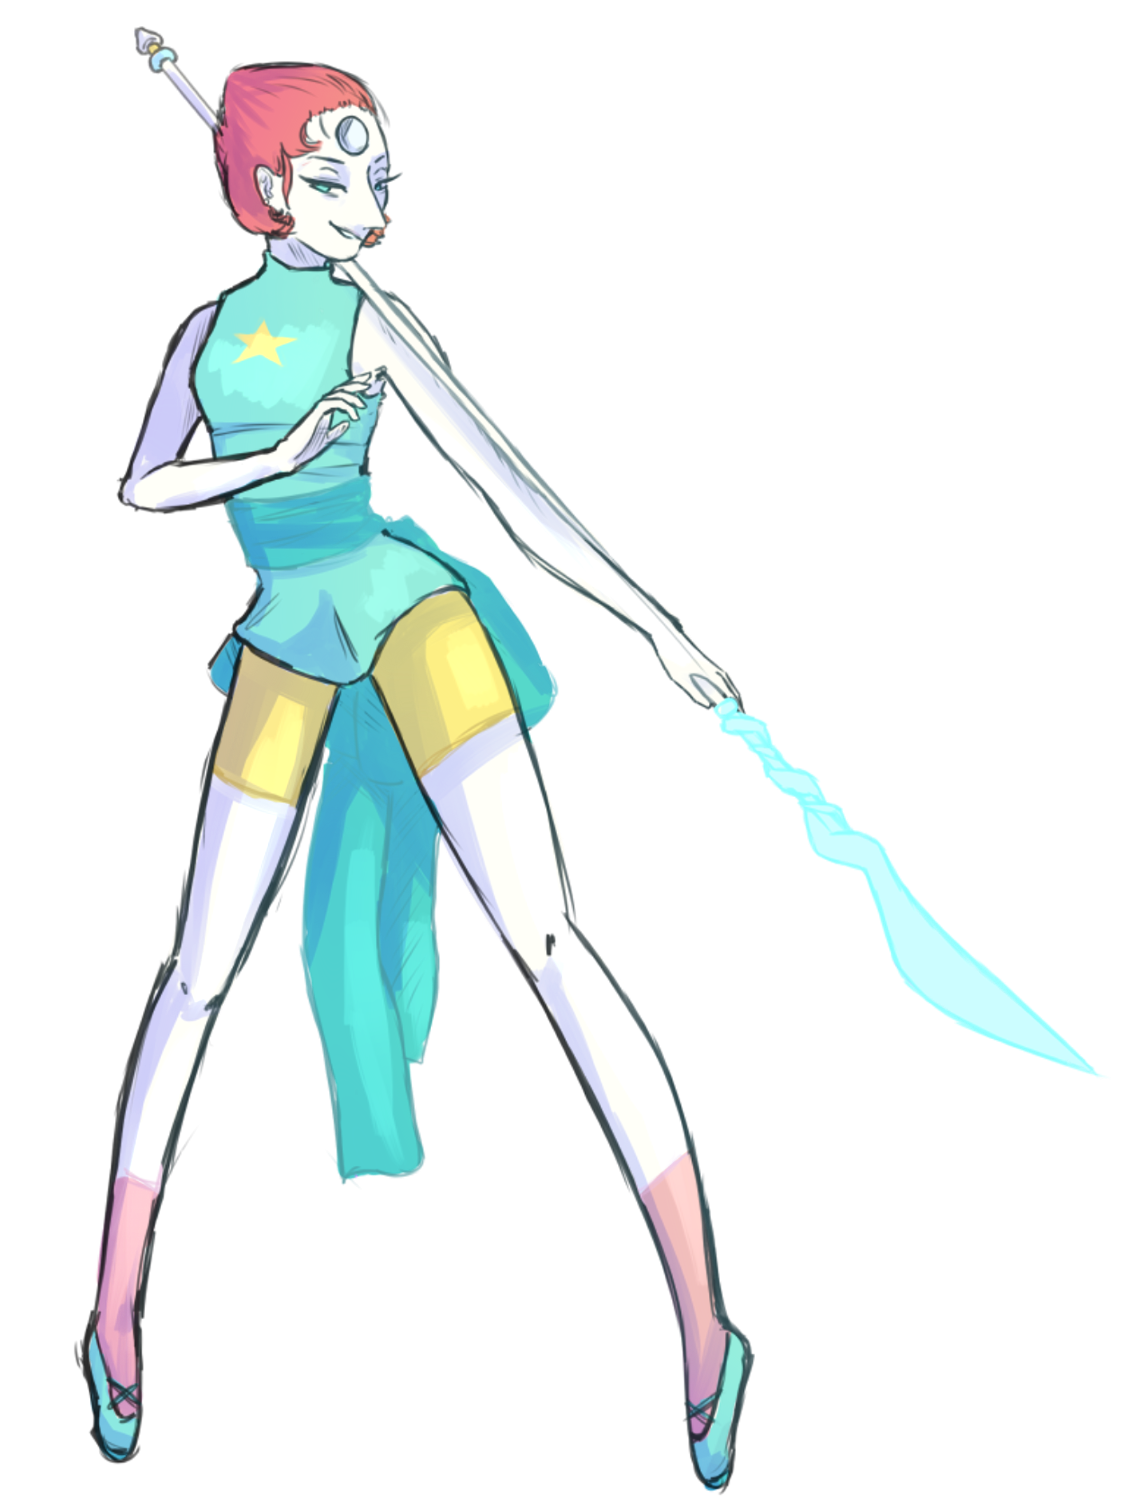 Pearl from steven universe, gift to a friend